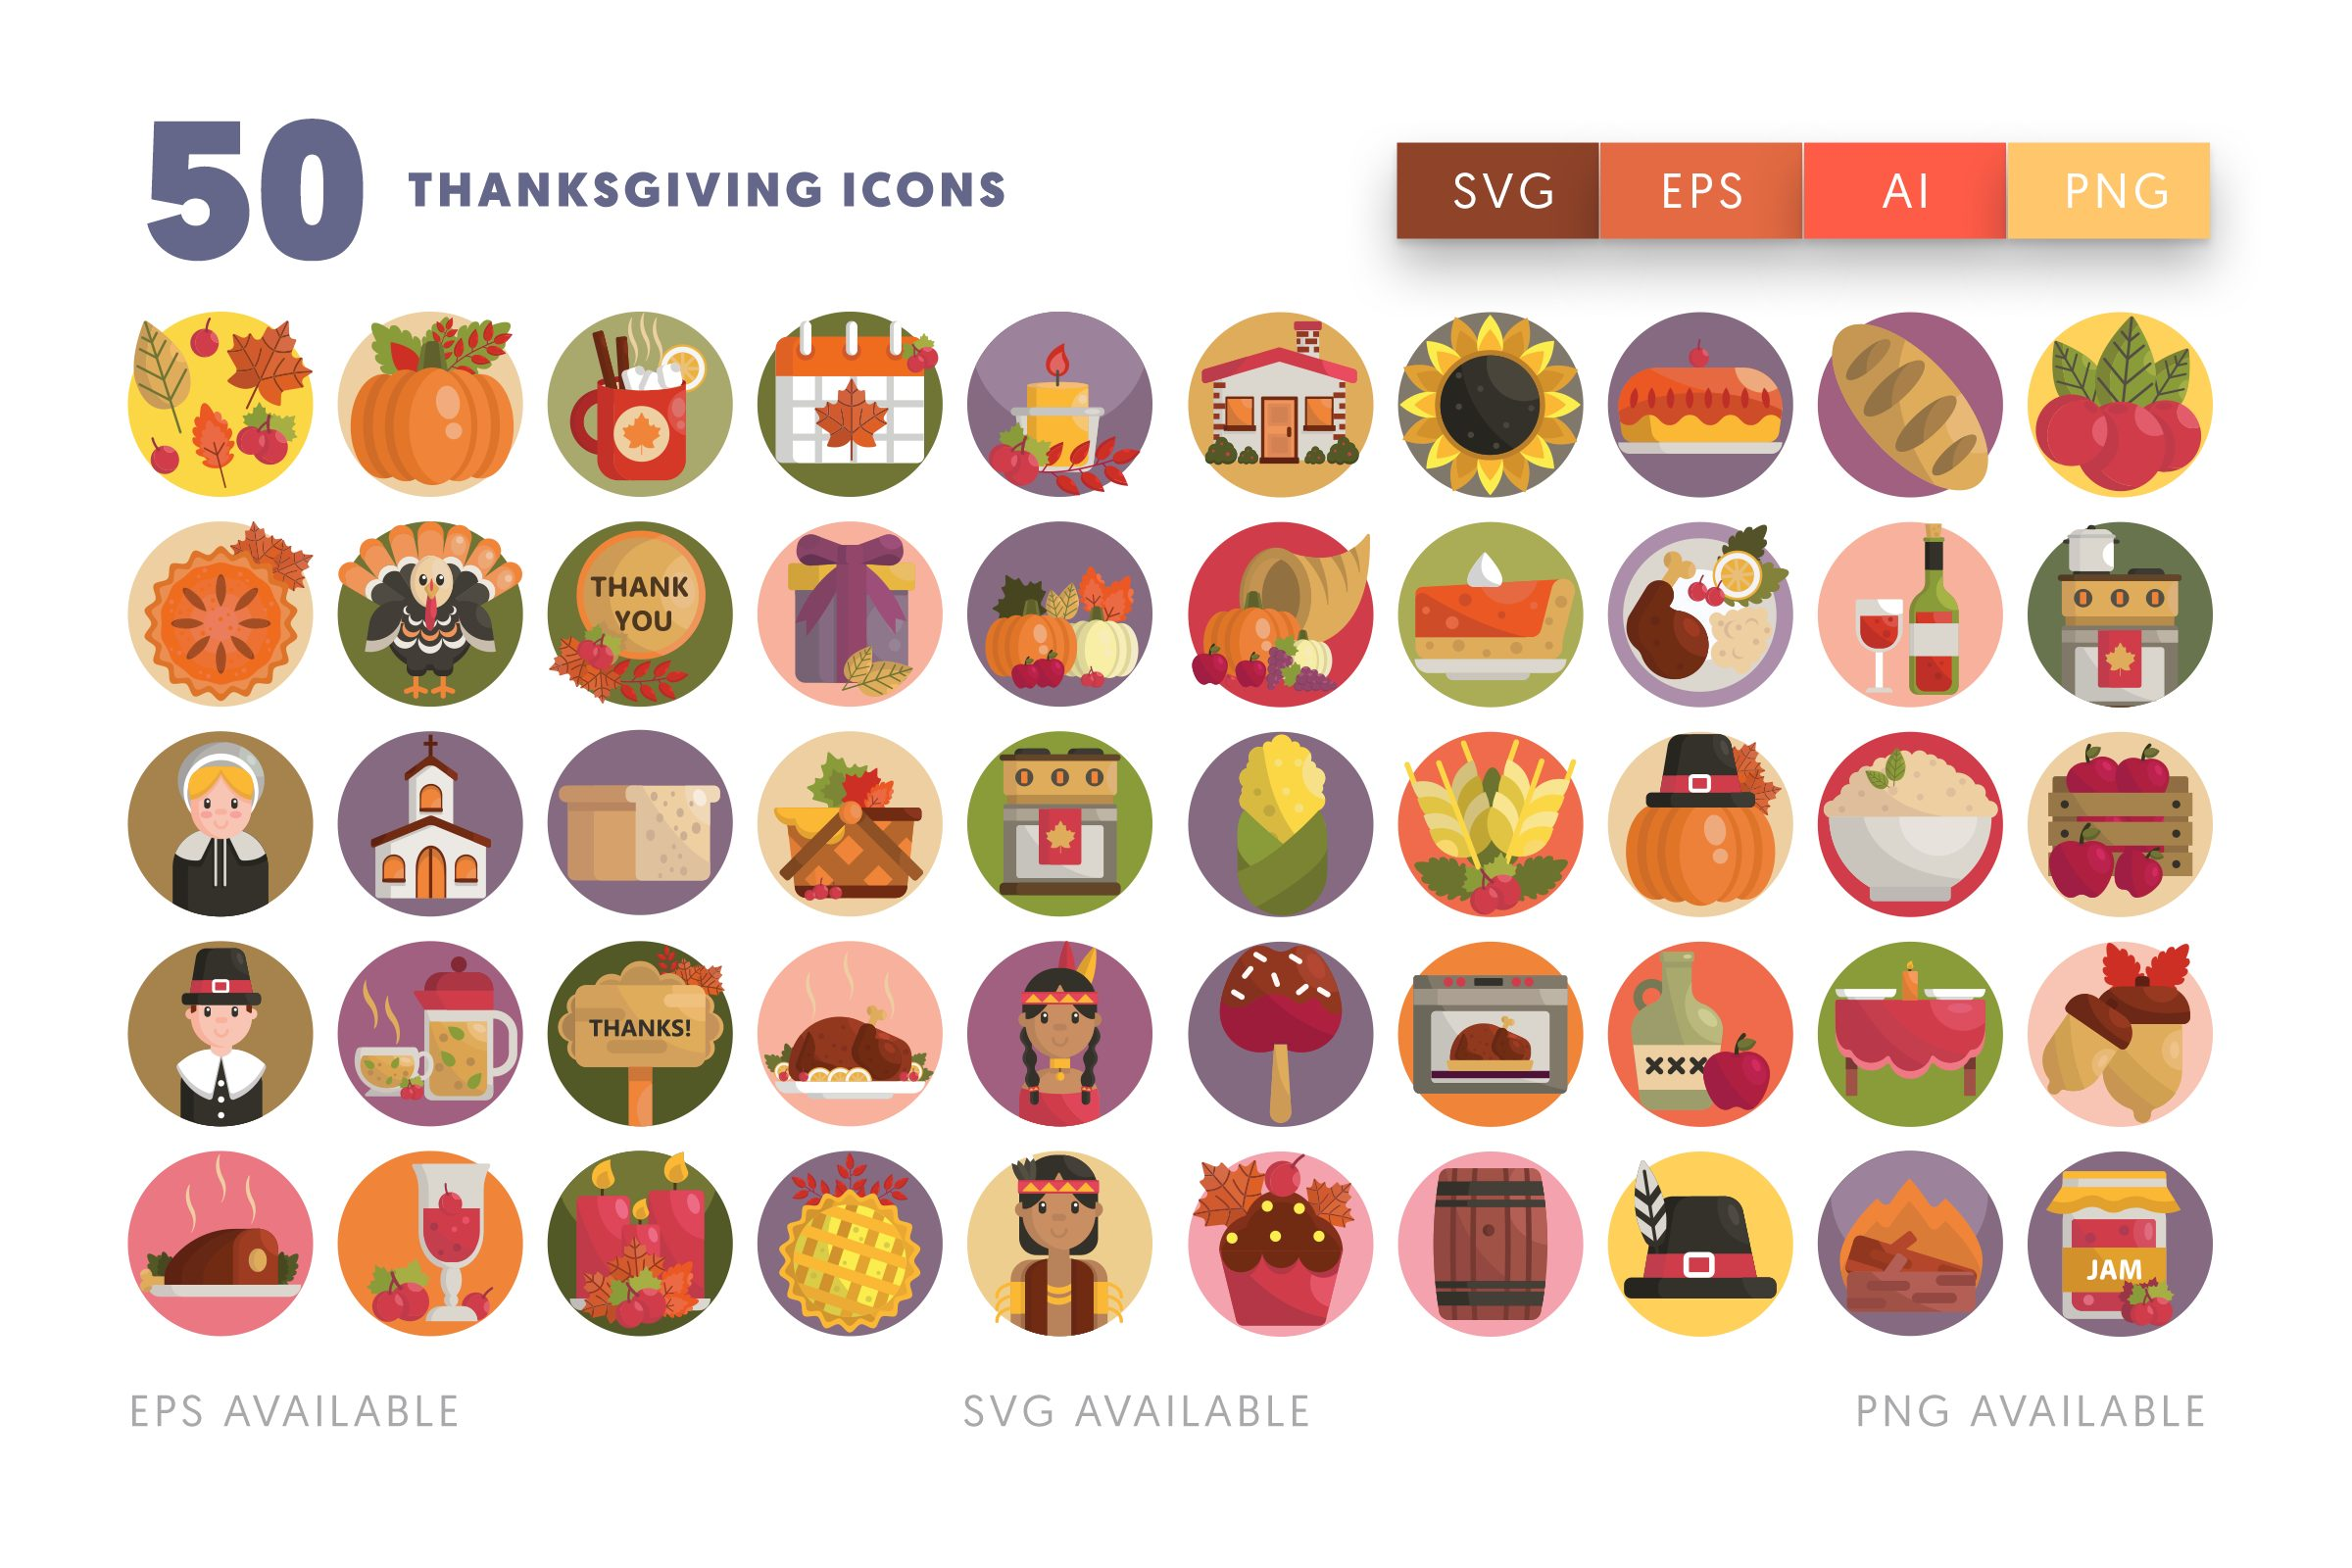 Thanksgiving icons png/svg/eps